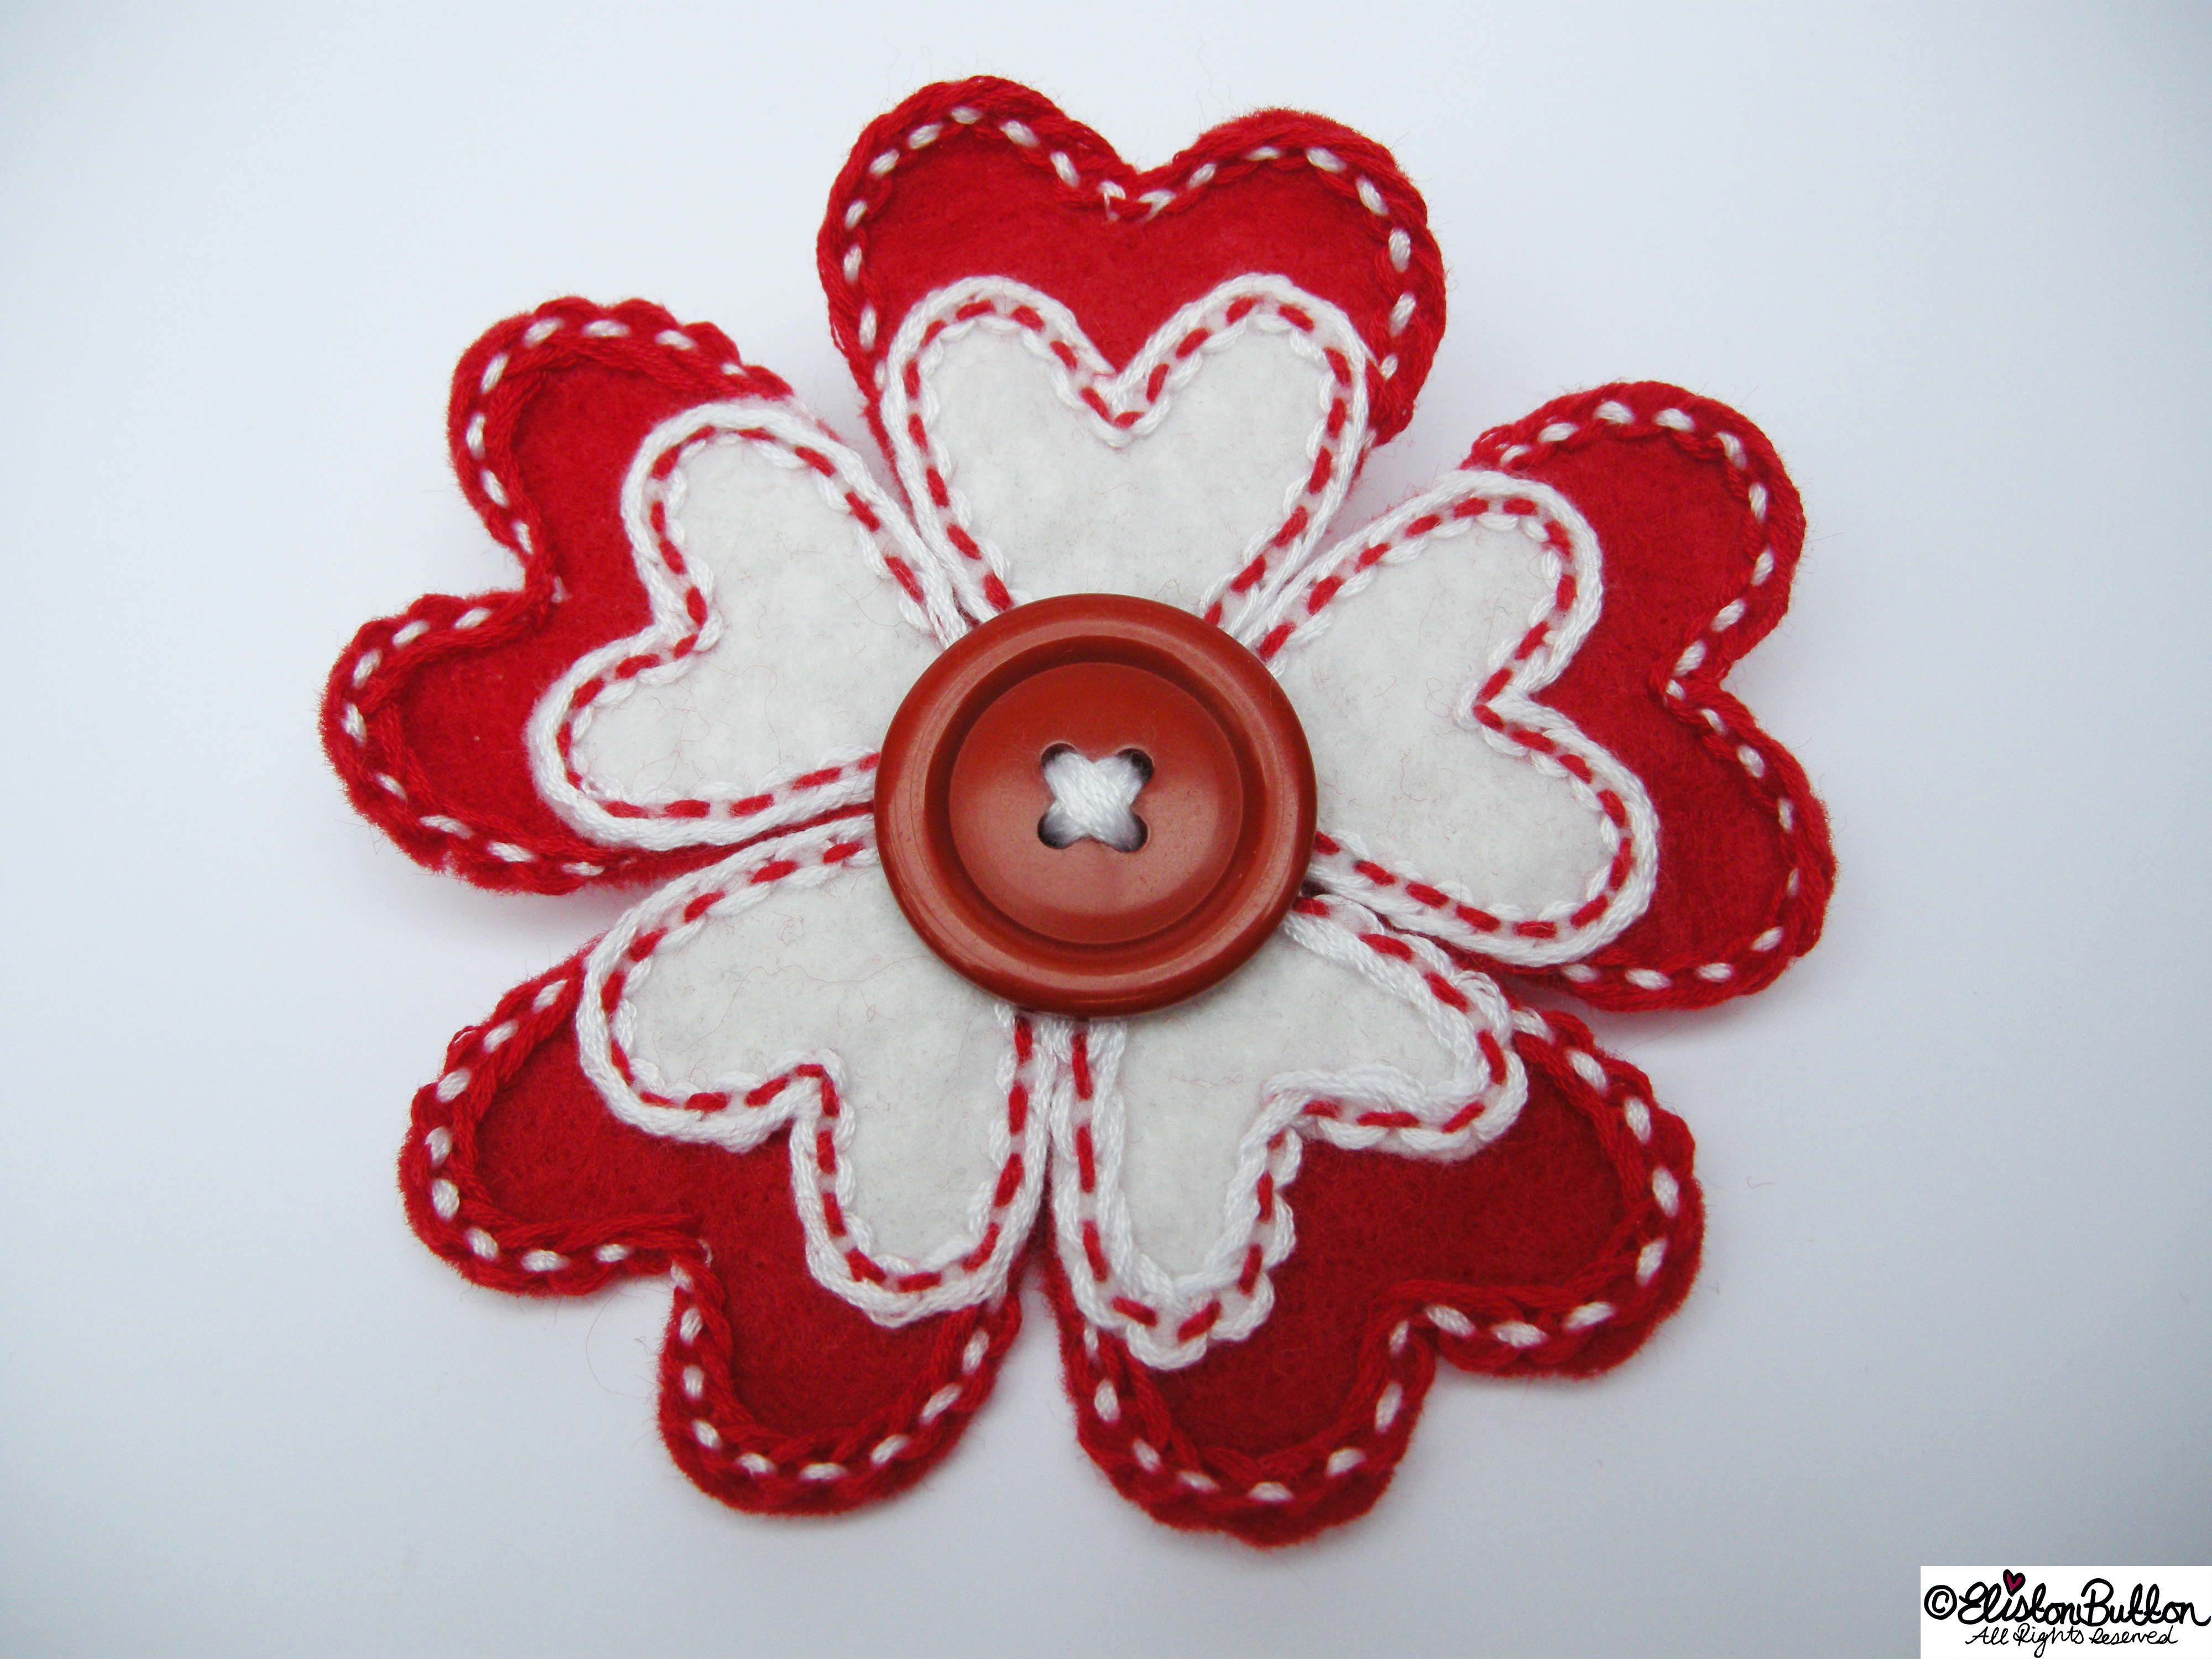 Hello Lover Red and White Embroidered Felt Heart Petal Flower Brooch - 27 Before 27 - Hello Lover... at www.elistonbutton.com - Eliston Button - That Crafty Kid – Art, Design, Craft & Adventure.